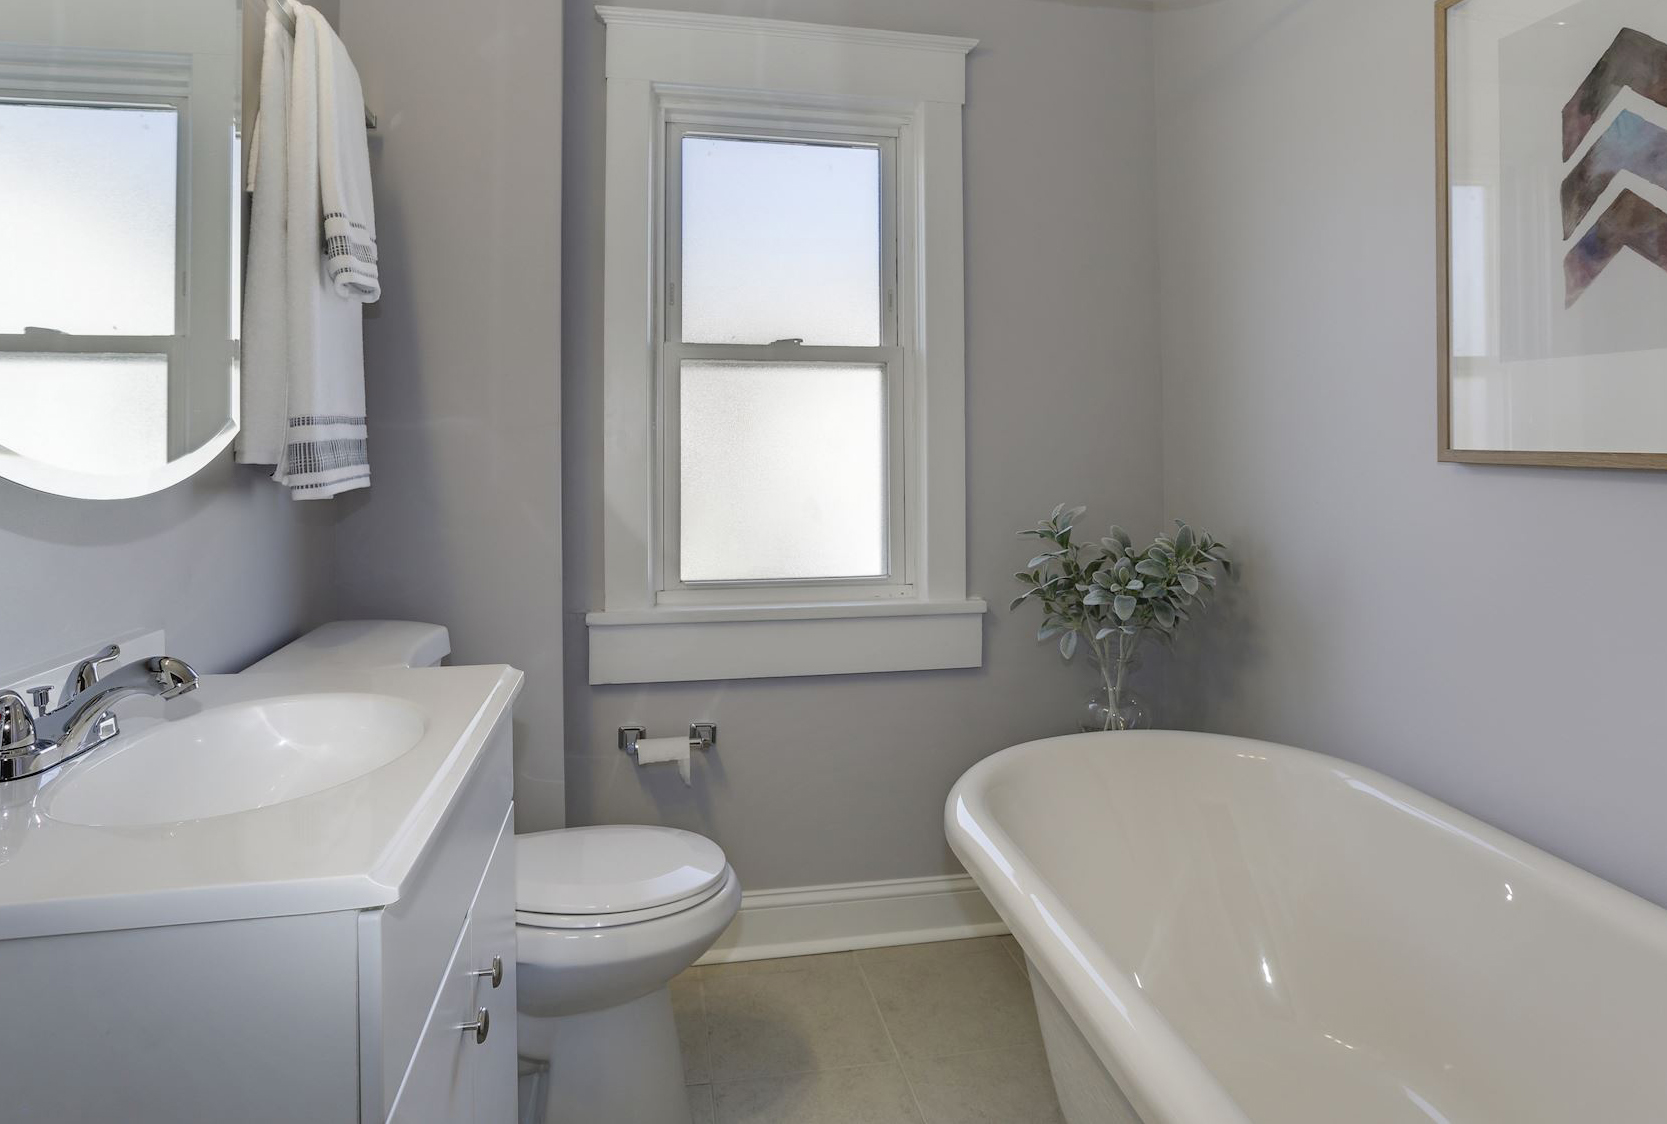 clover-oak-co-stagedtosell-bathroom3.jpg